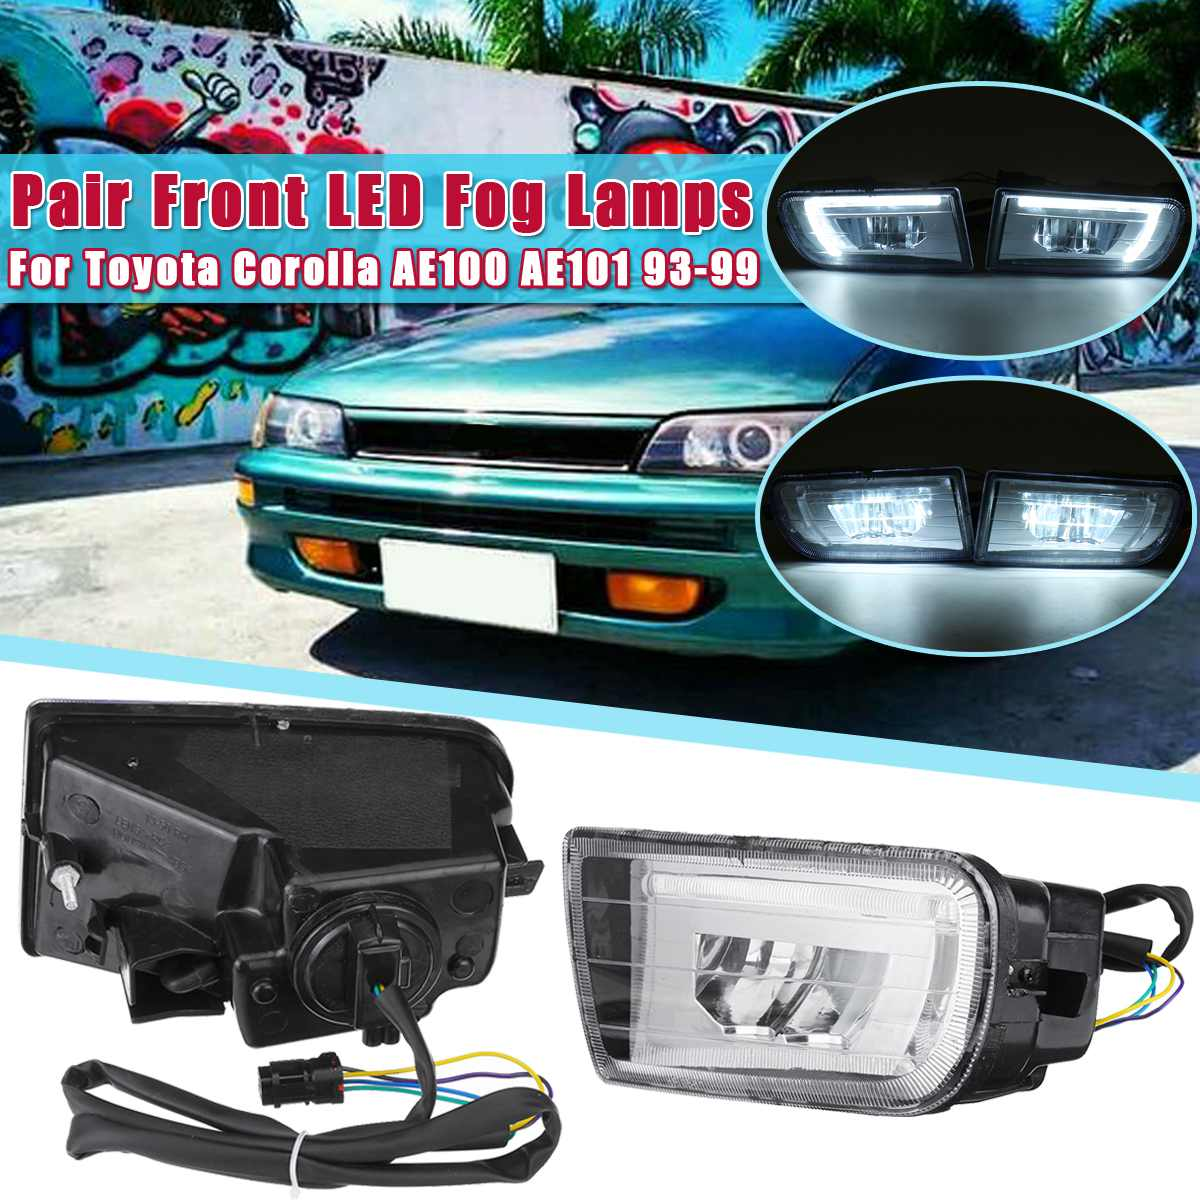 Pair Fog Lamp Assembly Super Bright Fog Light For <font><b>toyota</b></font> <font><b>Corolla</b></font> AE100 <font><b>AE101</b></font> 1993 1994 1995 1996 1997 1998 1999 Led Fog Lights image